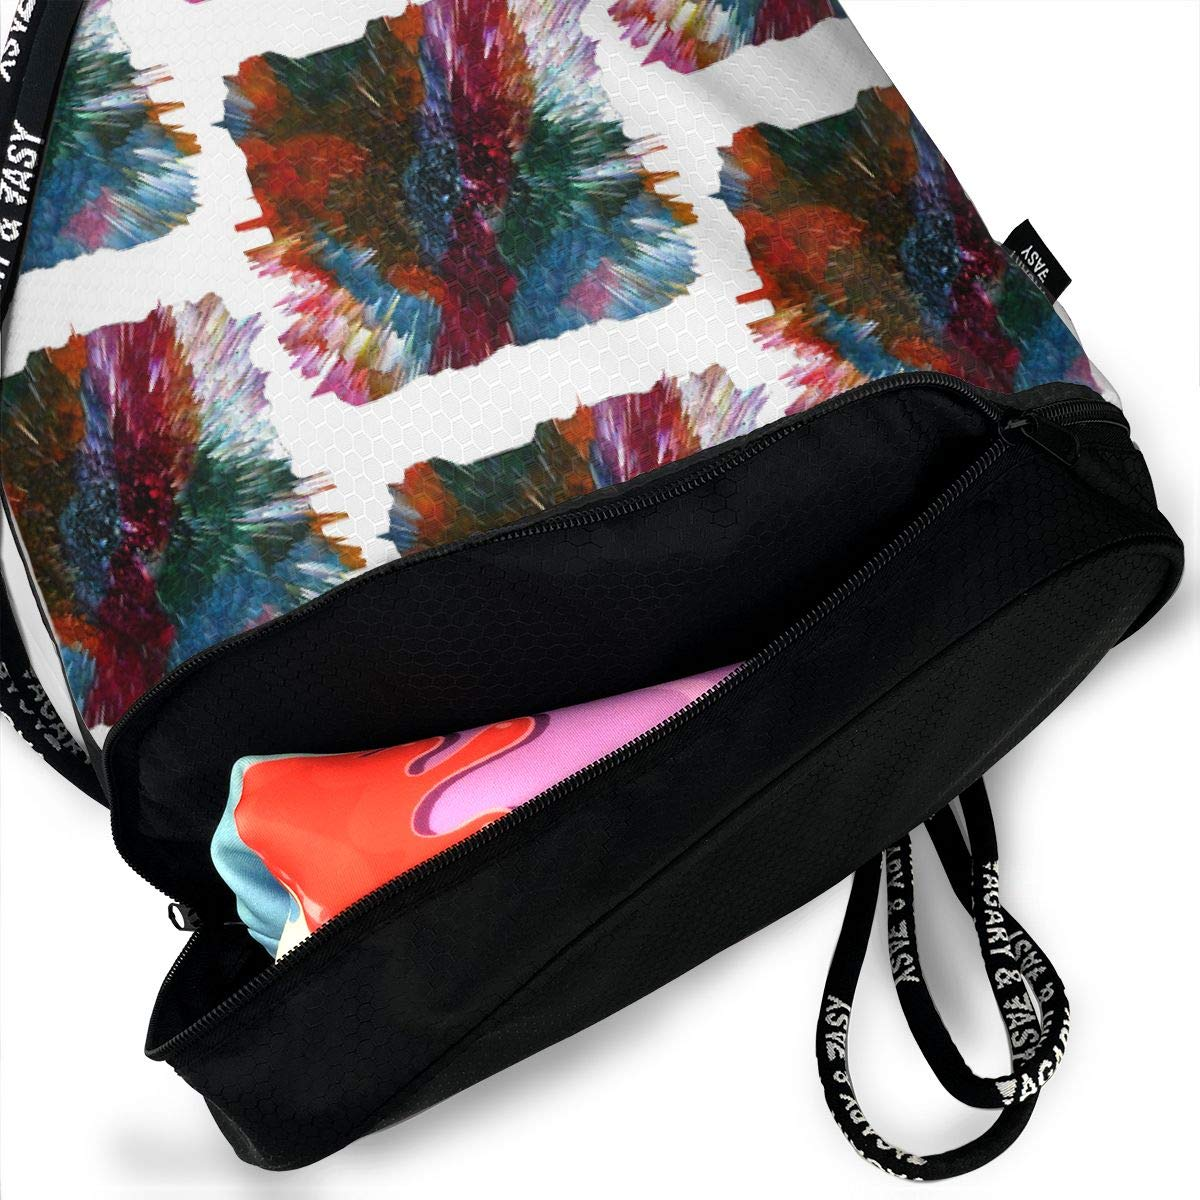 Color Burst Middle Age Drawstring Backpack Sports Athletic Gym Cinch Sack String Storage Bags for Hiking Travel Beach